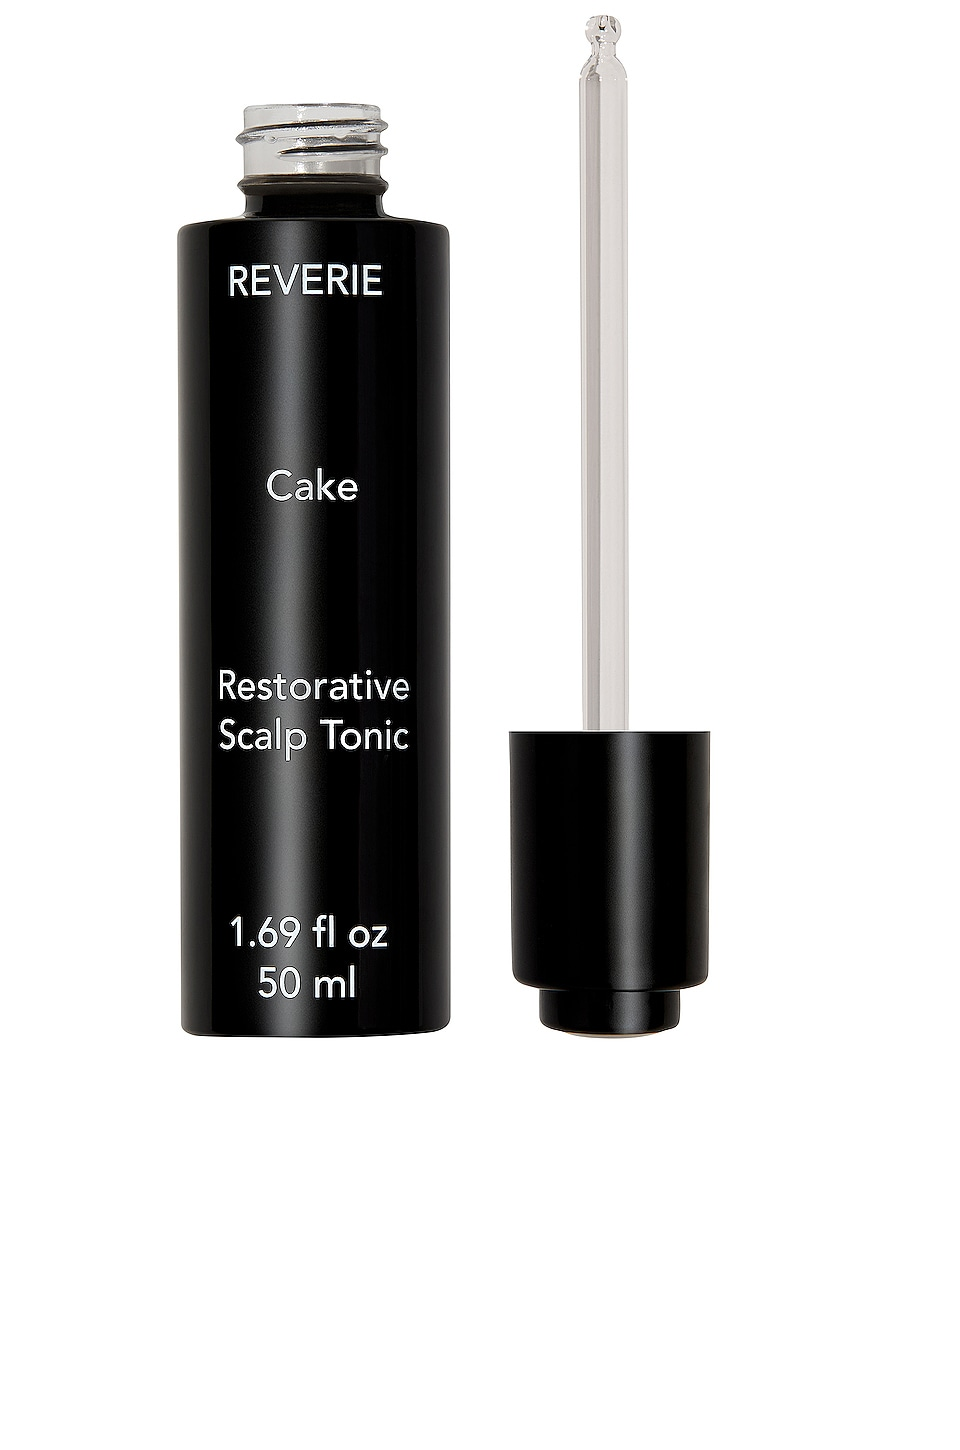 REVERIE CAKE Restorative Scalp Tonic